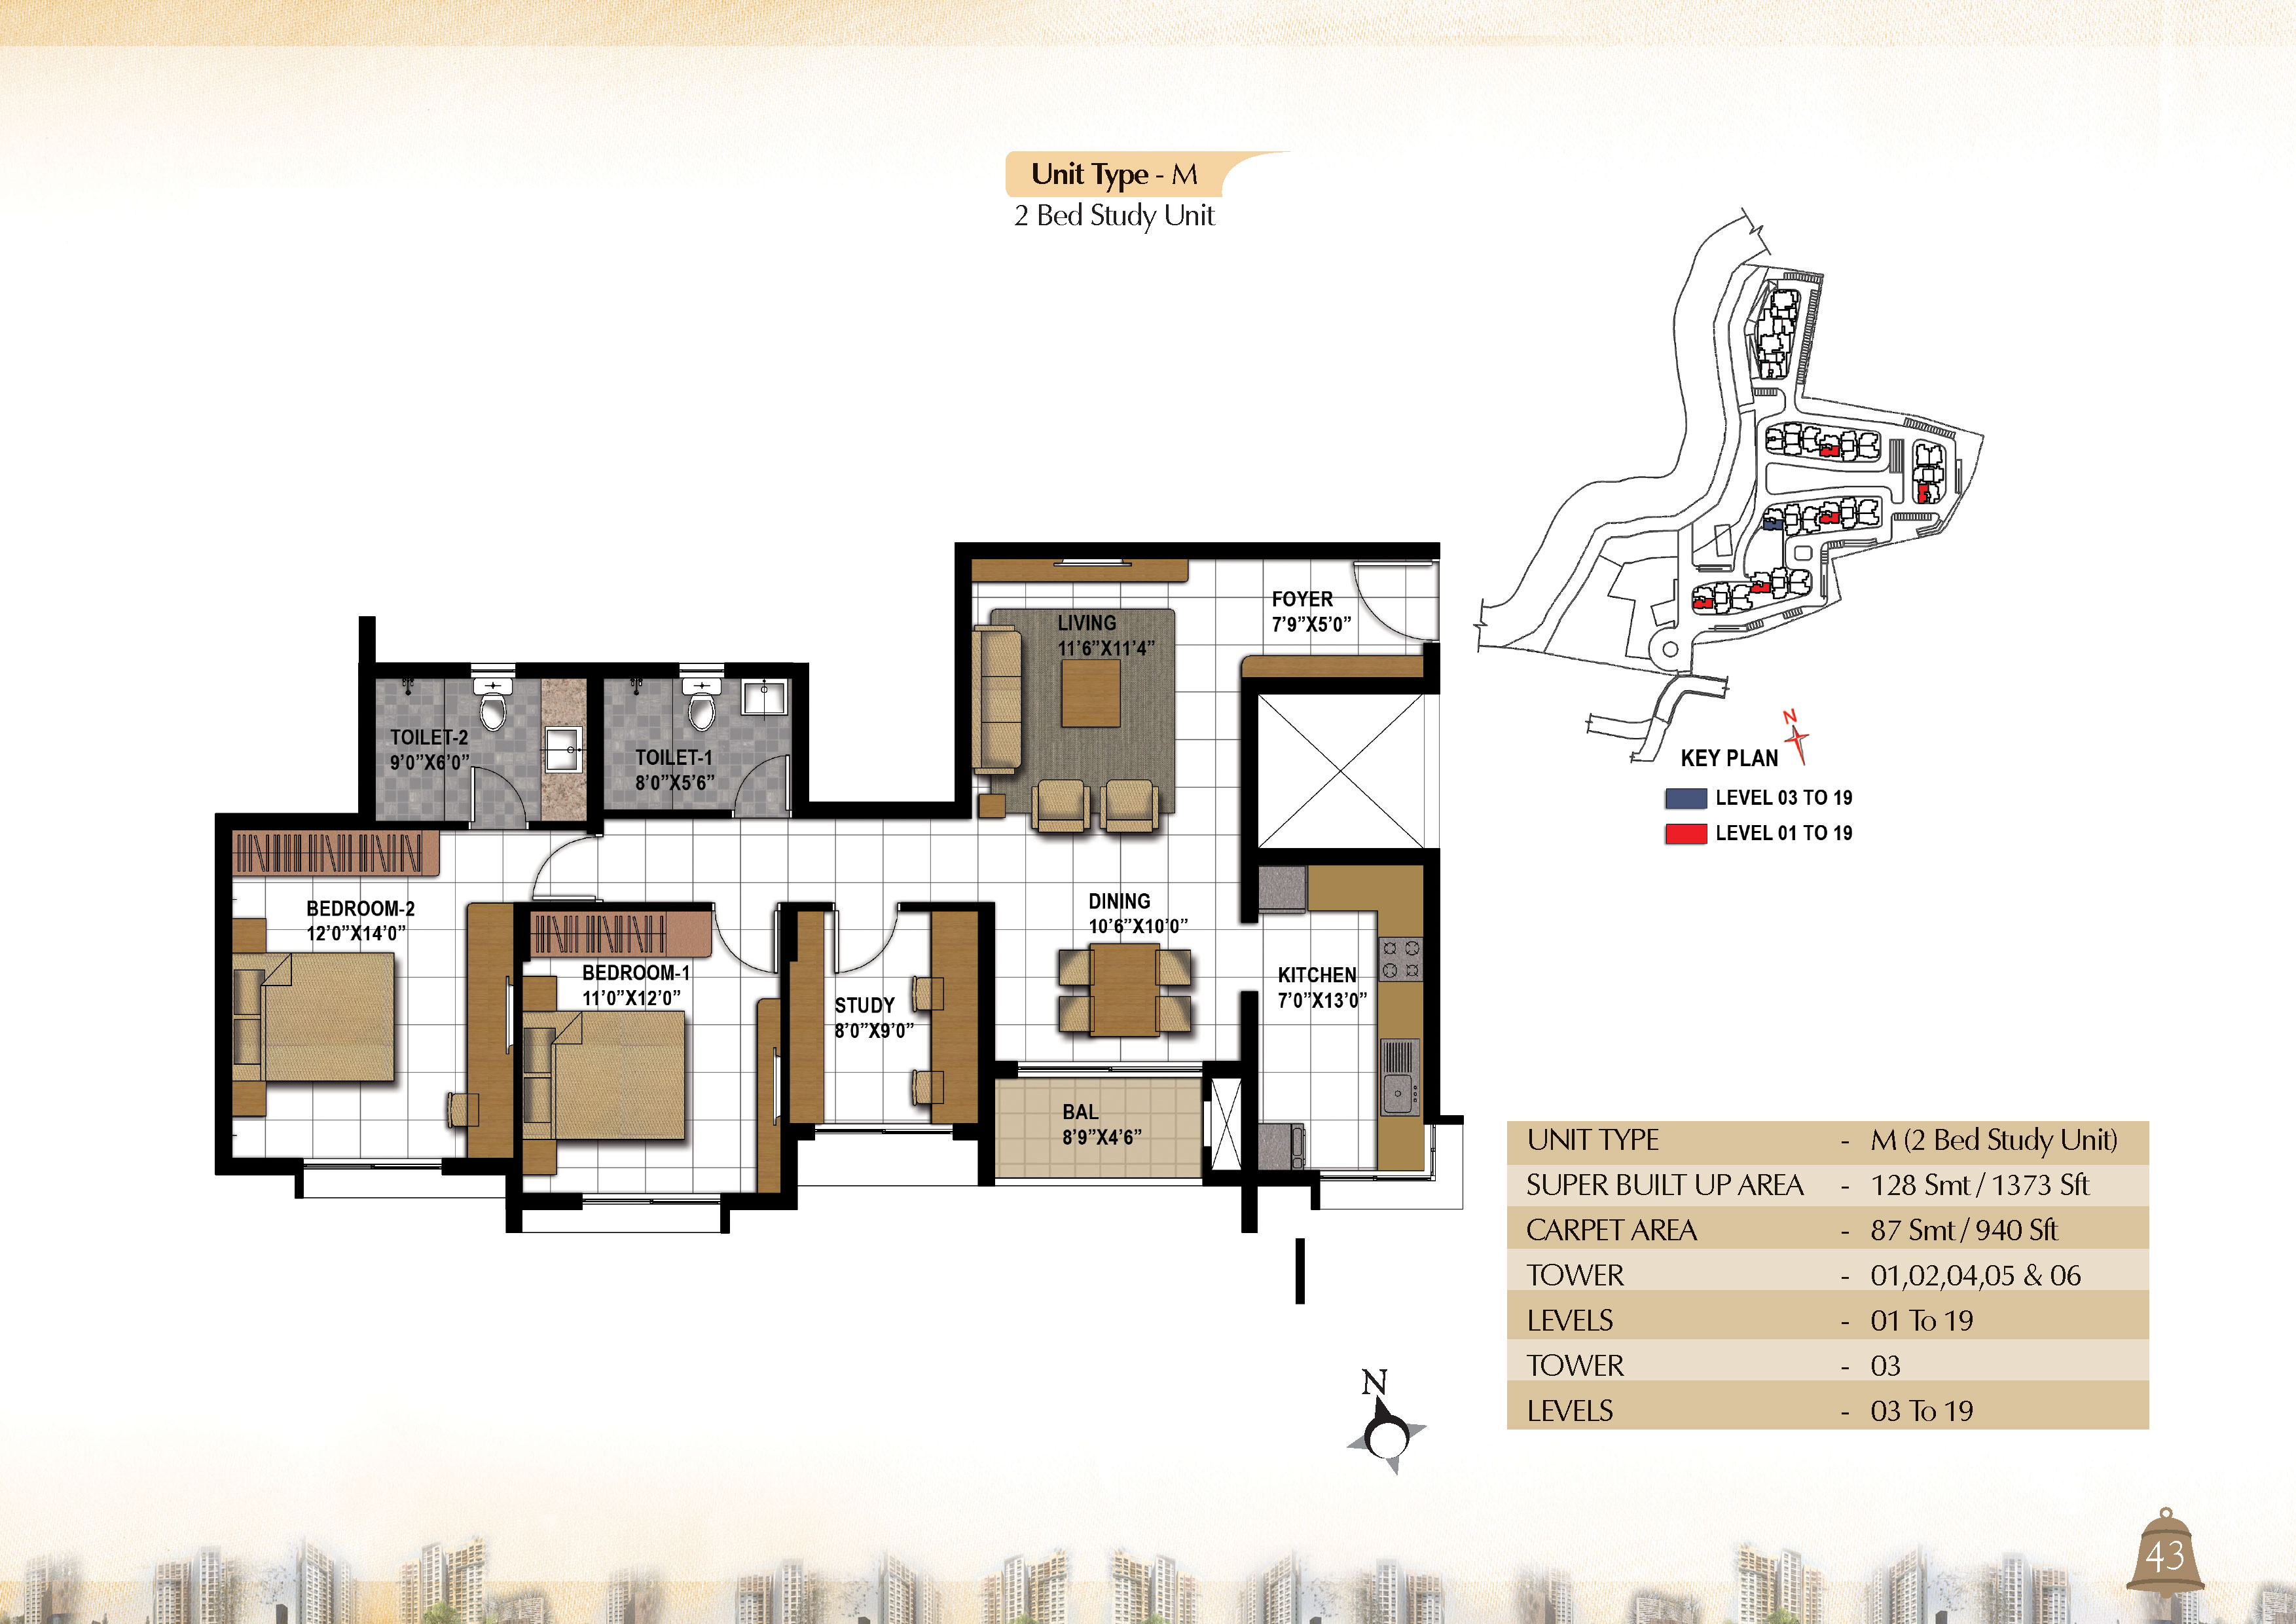 Type M - 2 Bed Study -  1373 Sq Ft